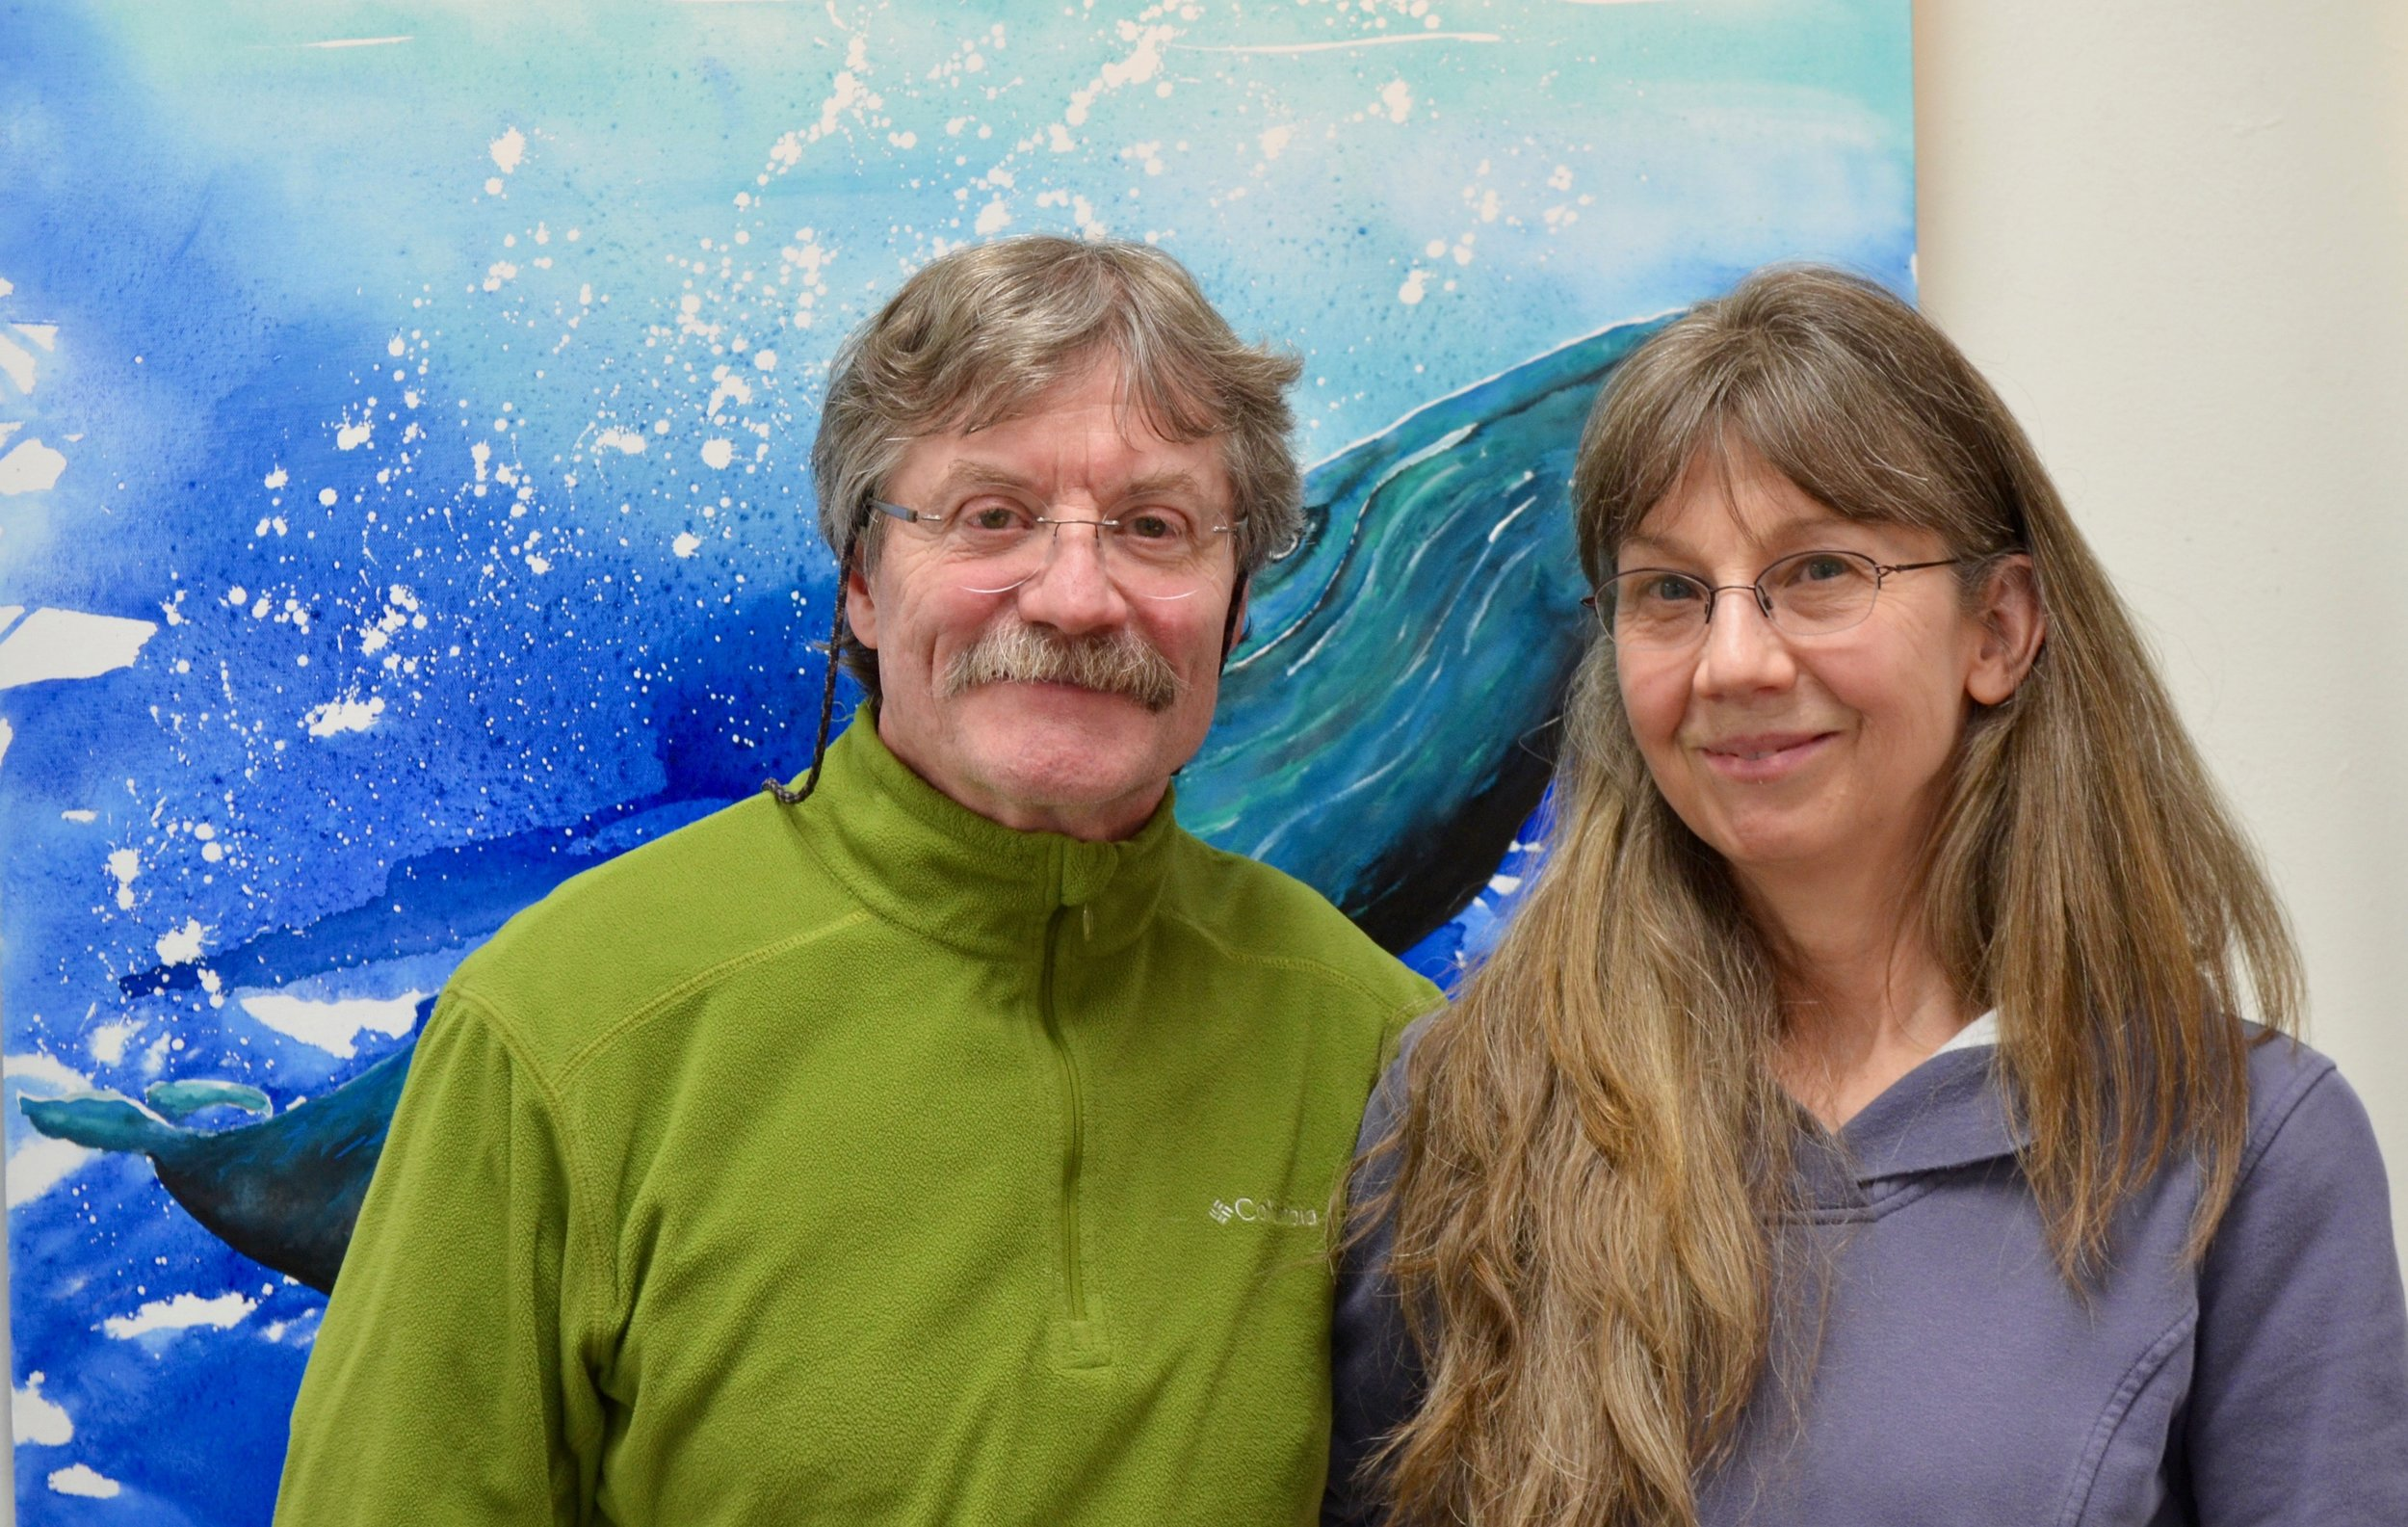 Herman and Paula Savikko at the JACC gallery, February 2018